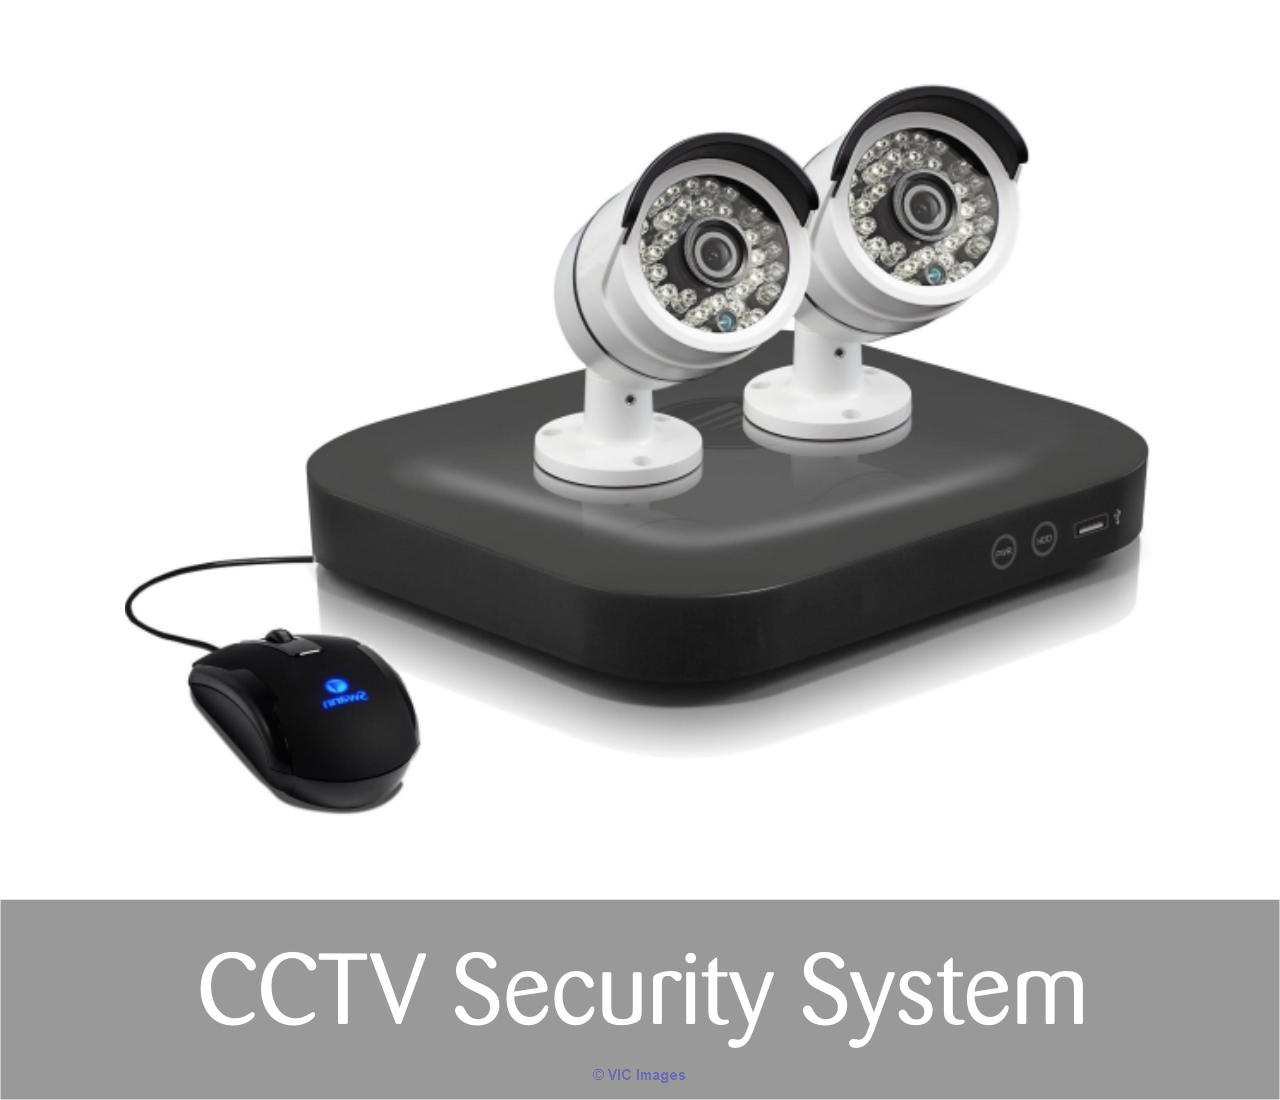 Vaya Technologies-CCTV Security System, Udaipur, Rajasthan, India Ottawa, Ontario, Canada Classifieds